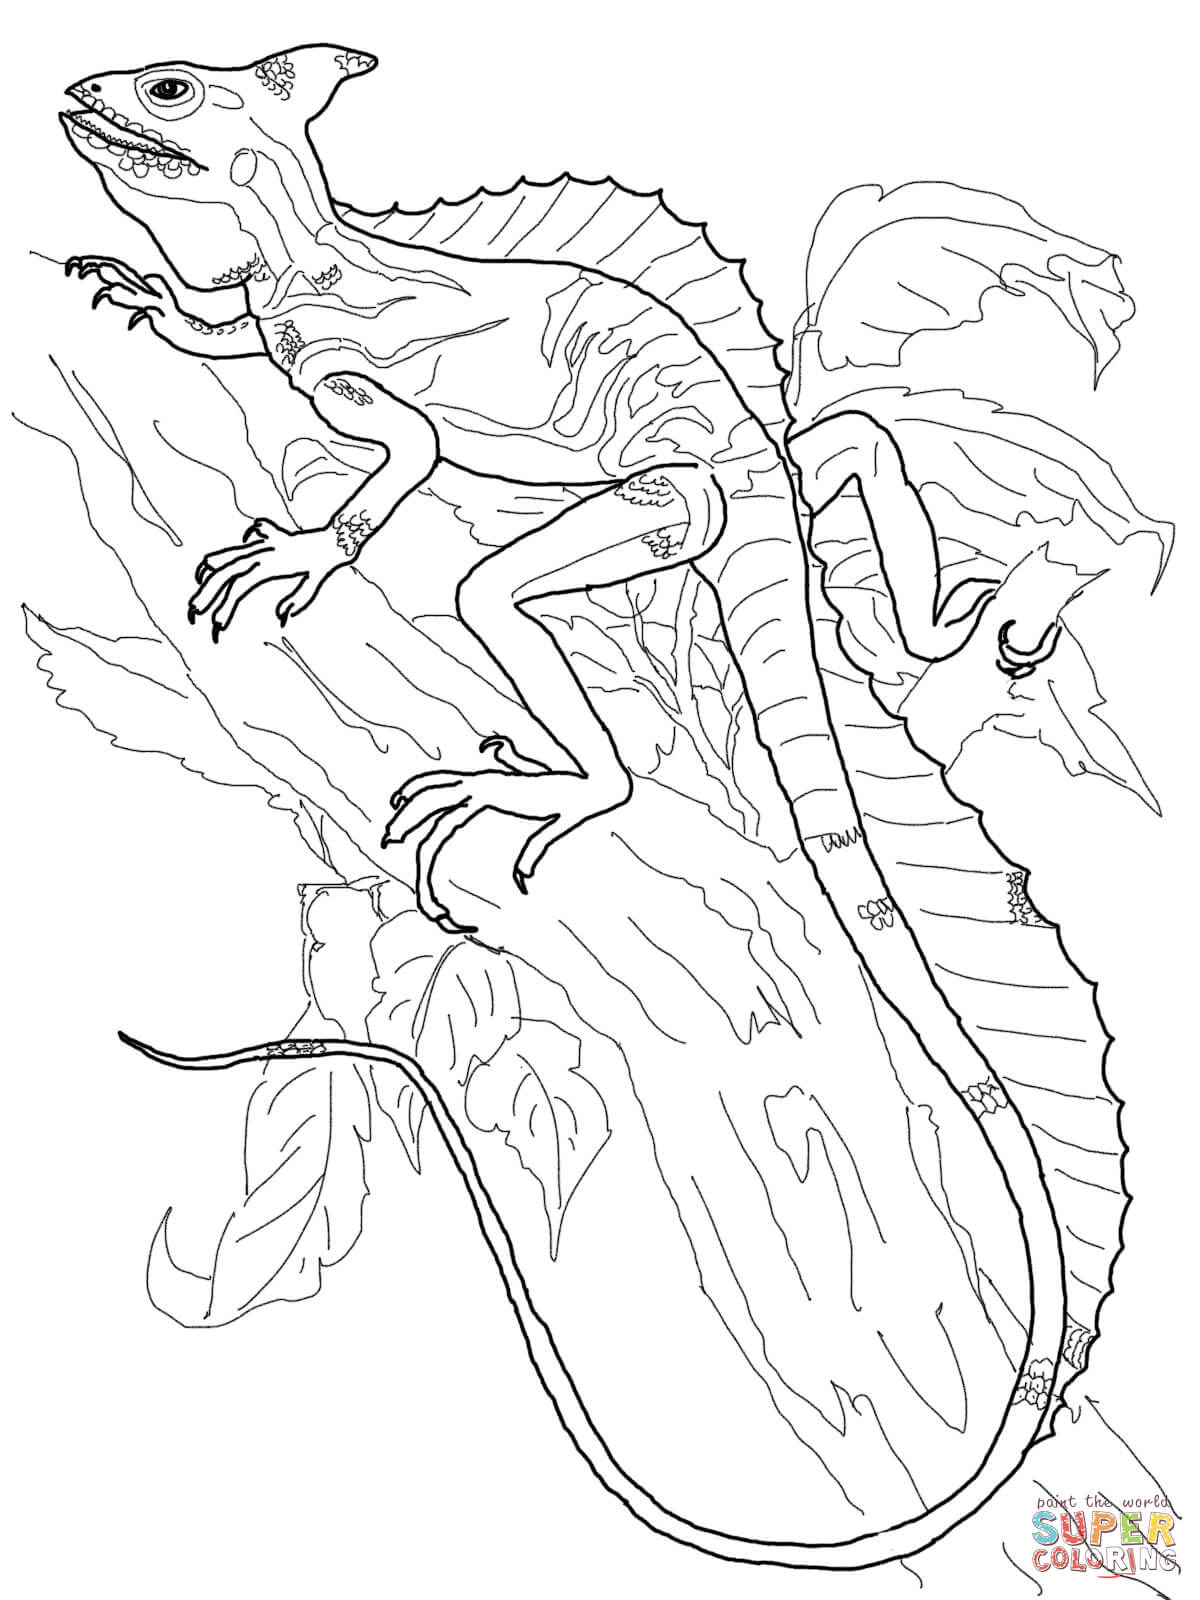 lizard picture to color monitor lizard coloring pages coloring pages to download lizard picture color to